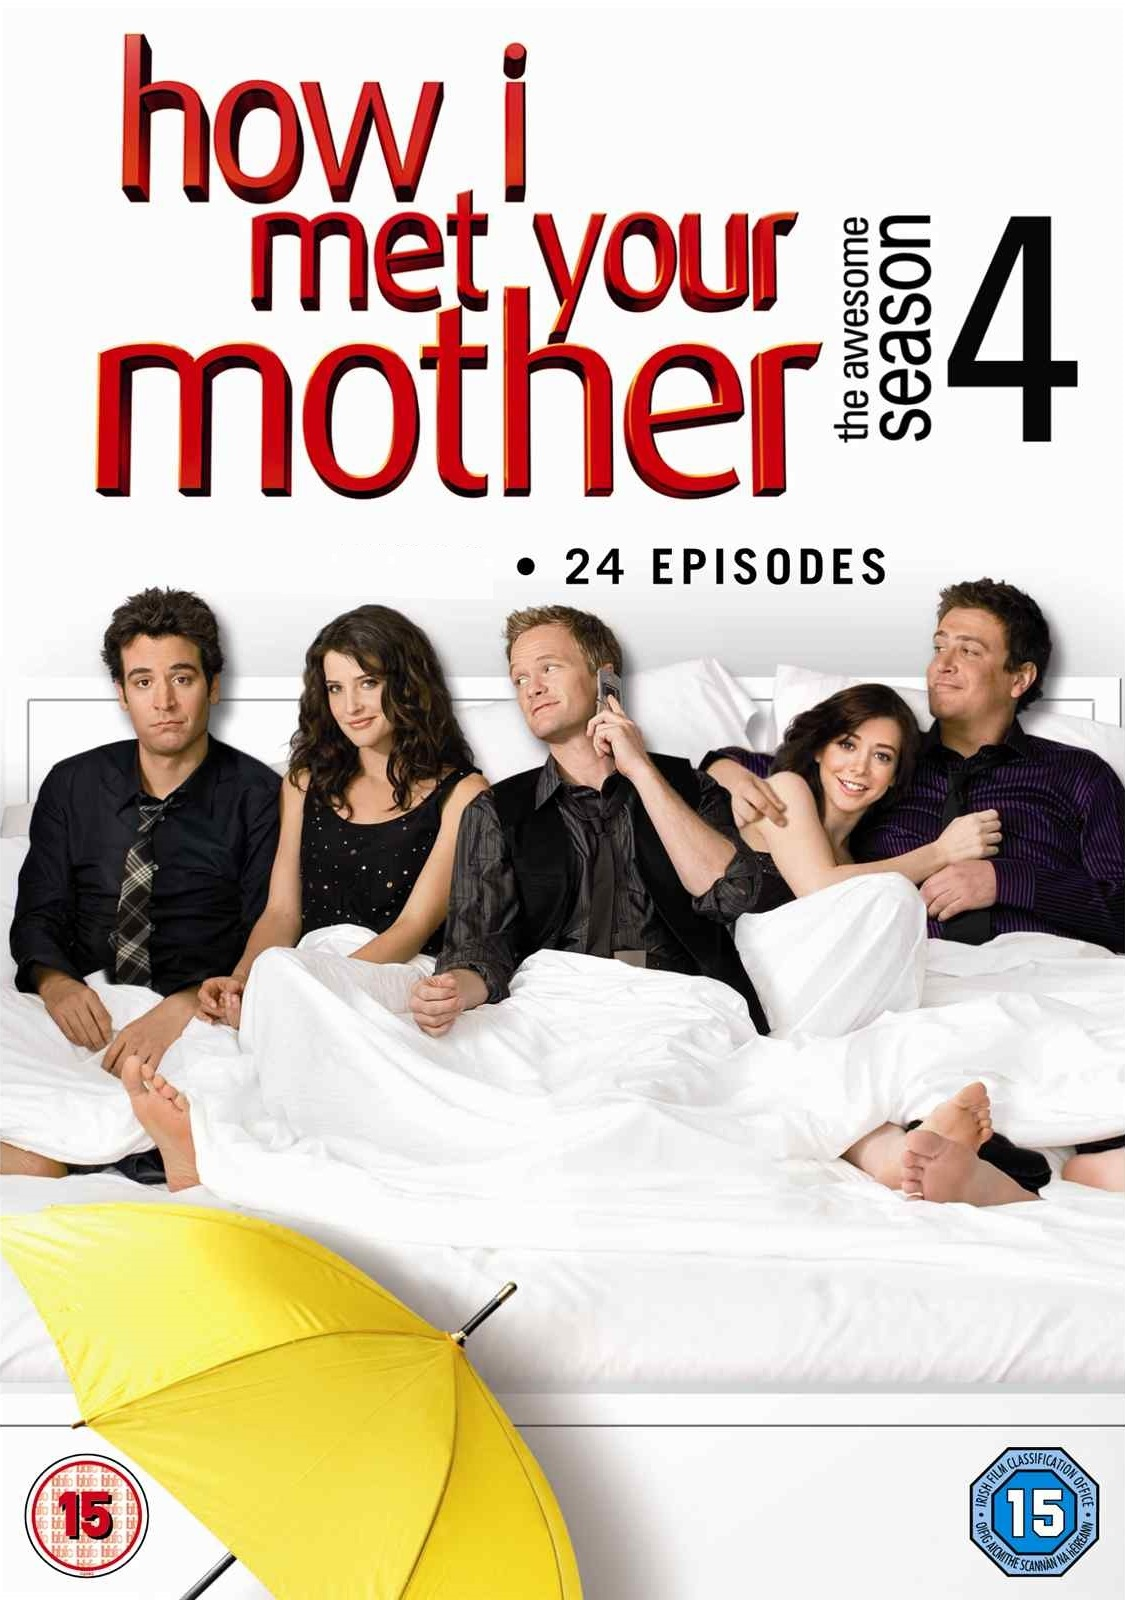 How I Met Your Mother - Show News, Reviews, Recaps and ...